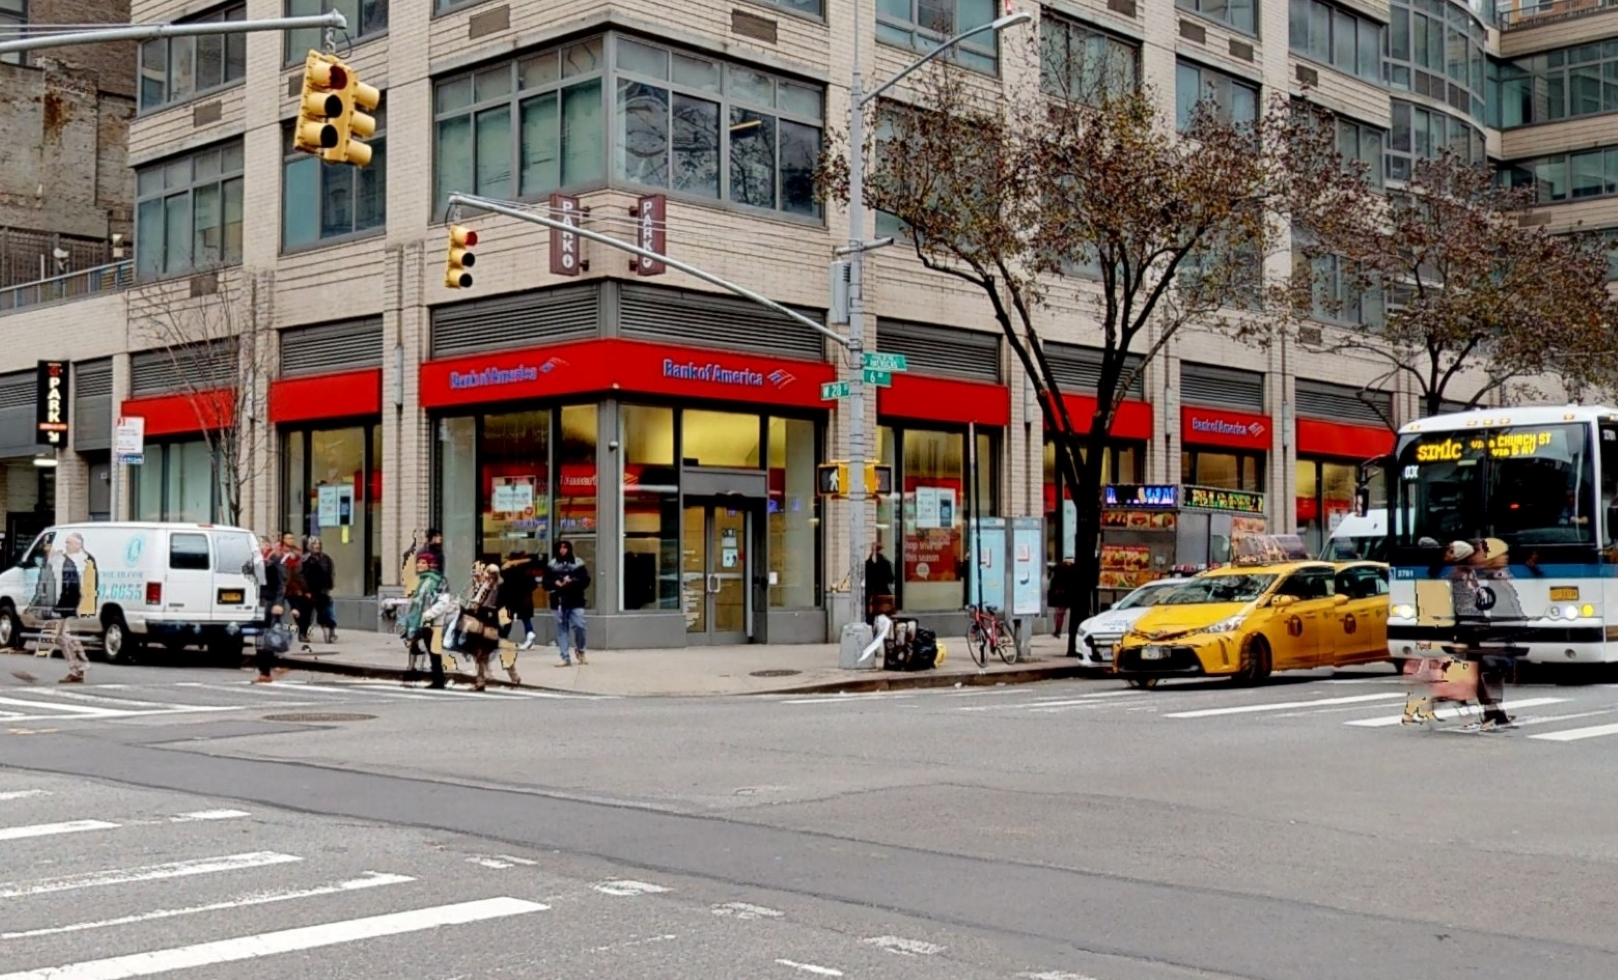 Bank of America financial center with walk-up ATM | 800 Avenue of the Americas, New York, NY 10001